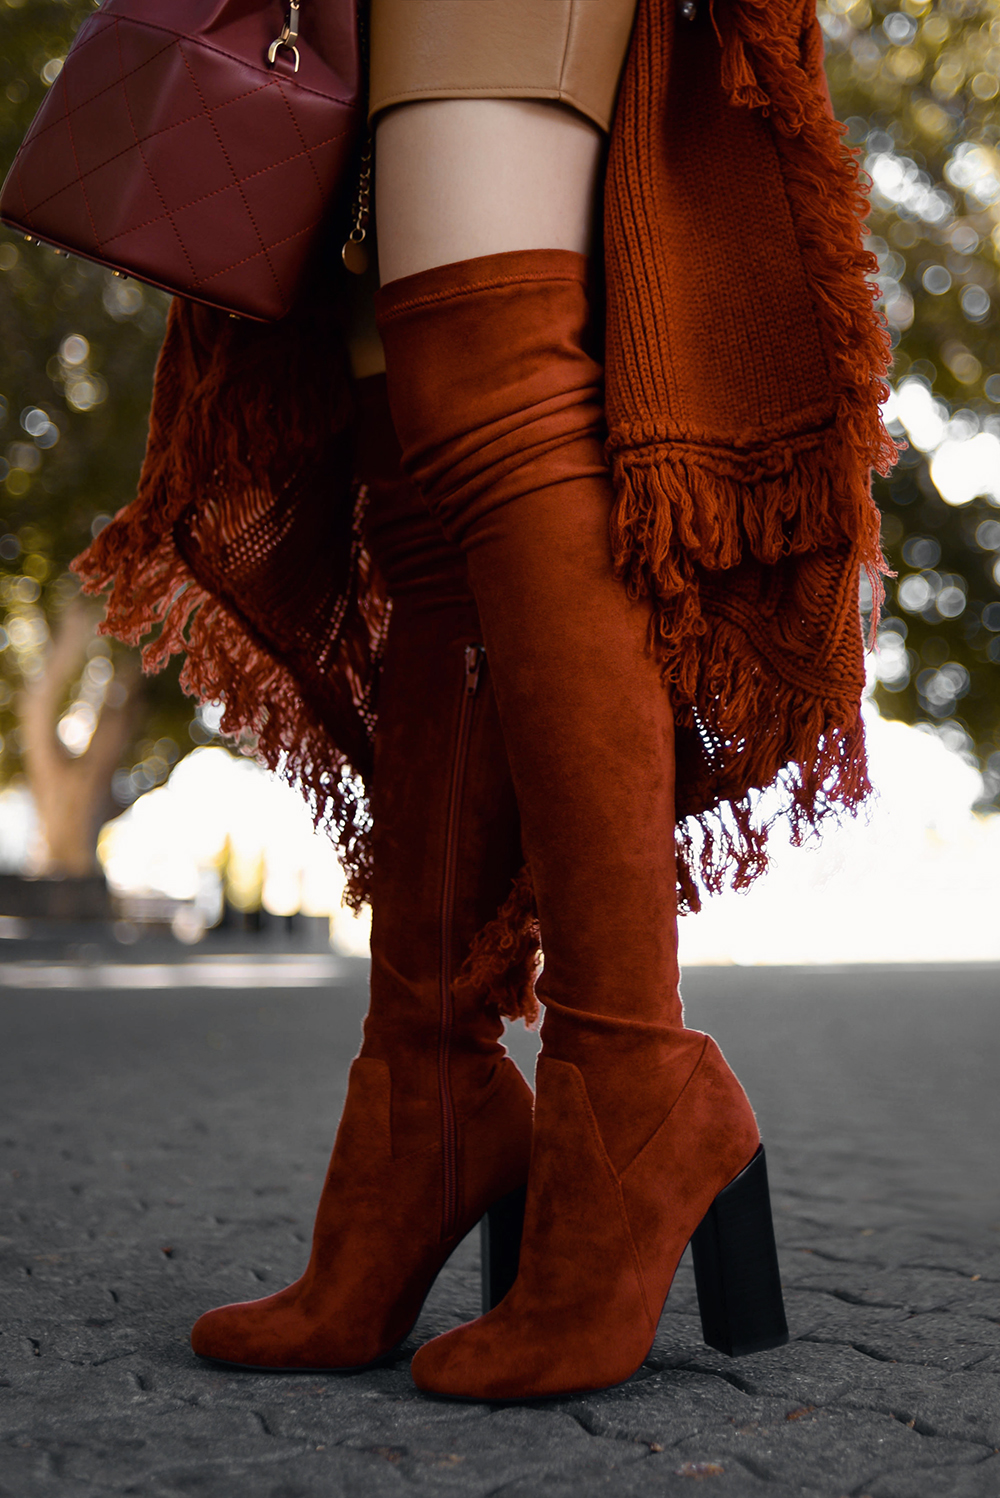 willabelle-ong-paledivision-street-style-fashion-travel-lifestyle-blog-singapore-australia-revolve-clothing-jeffrey-campbell-thigh-high-suede-red-boots-knit-cardigan-outfit-editorial-3